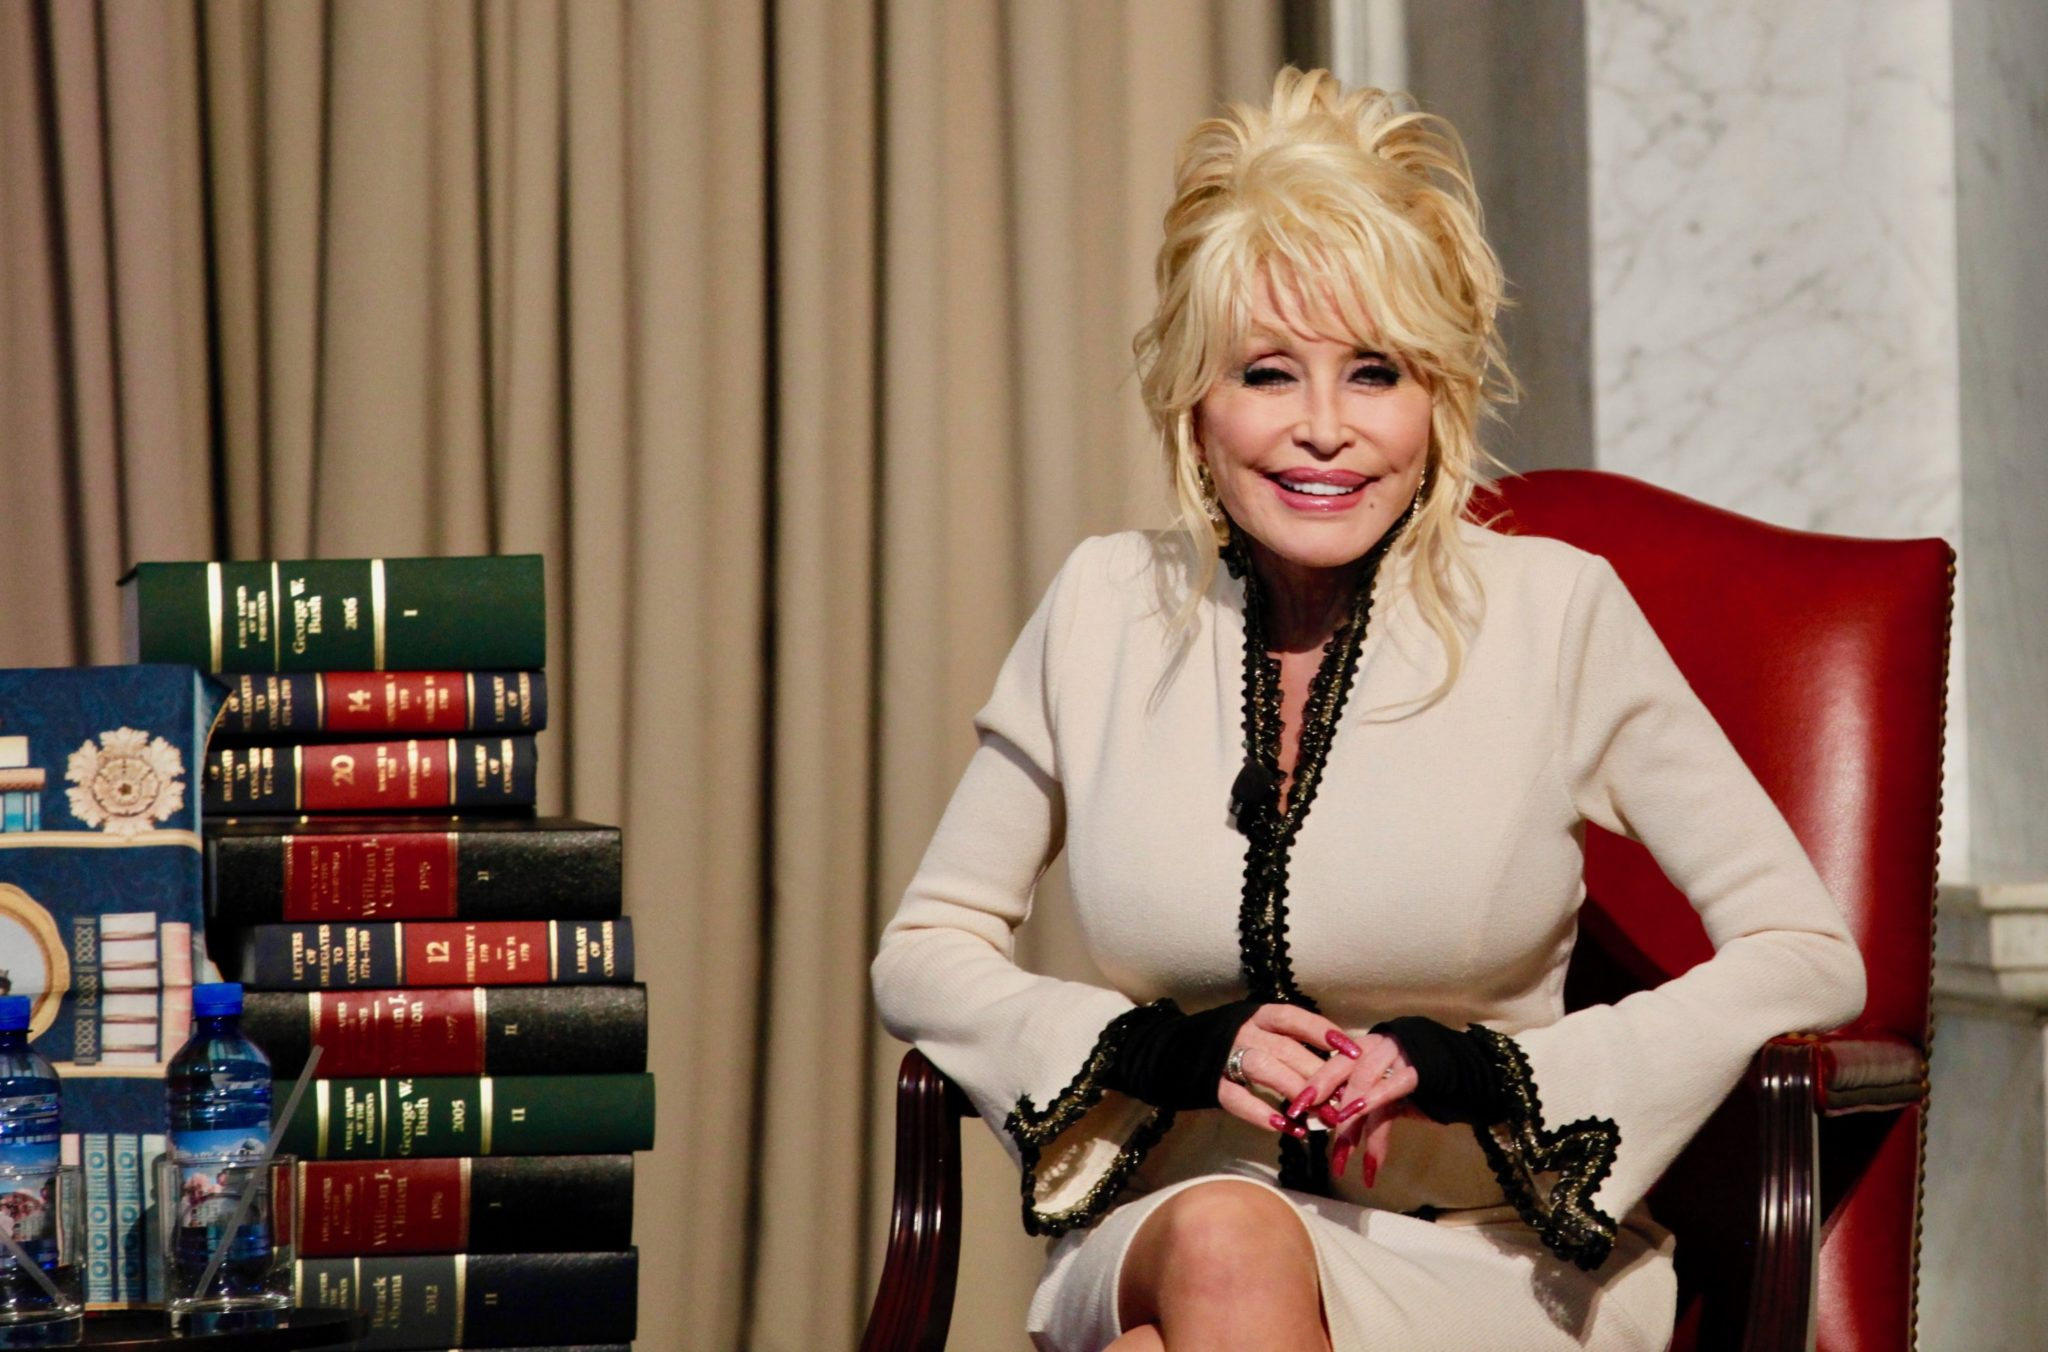 PHOTOS: Dolly Parton Visits Library of Congress to Donate Her 100 Millionth Book